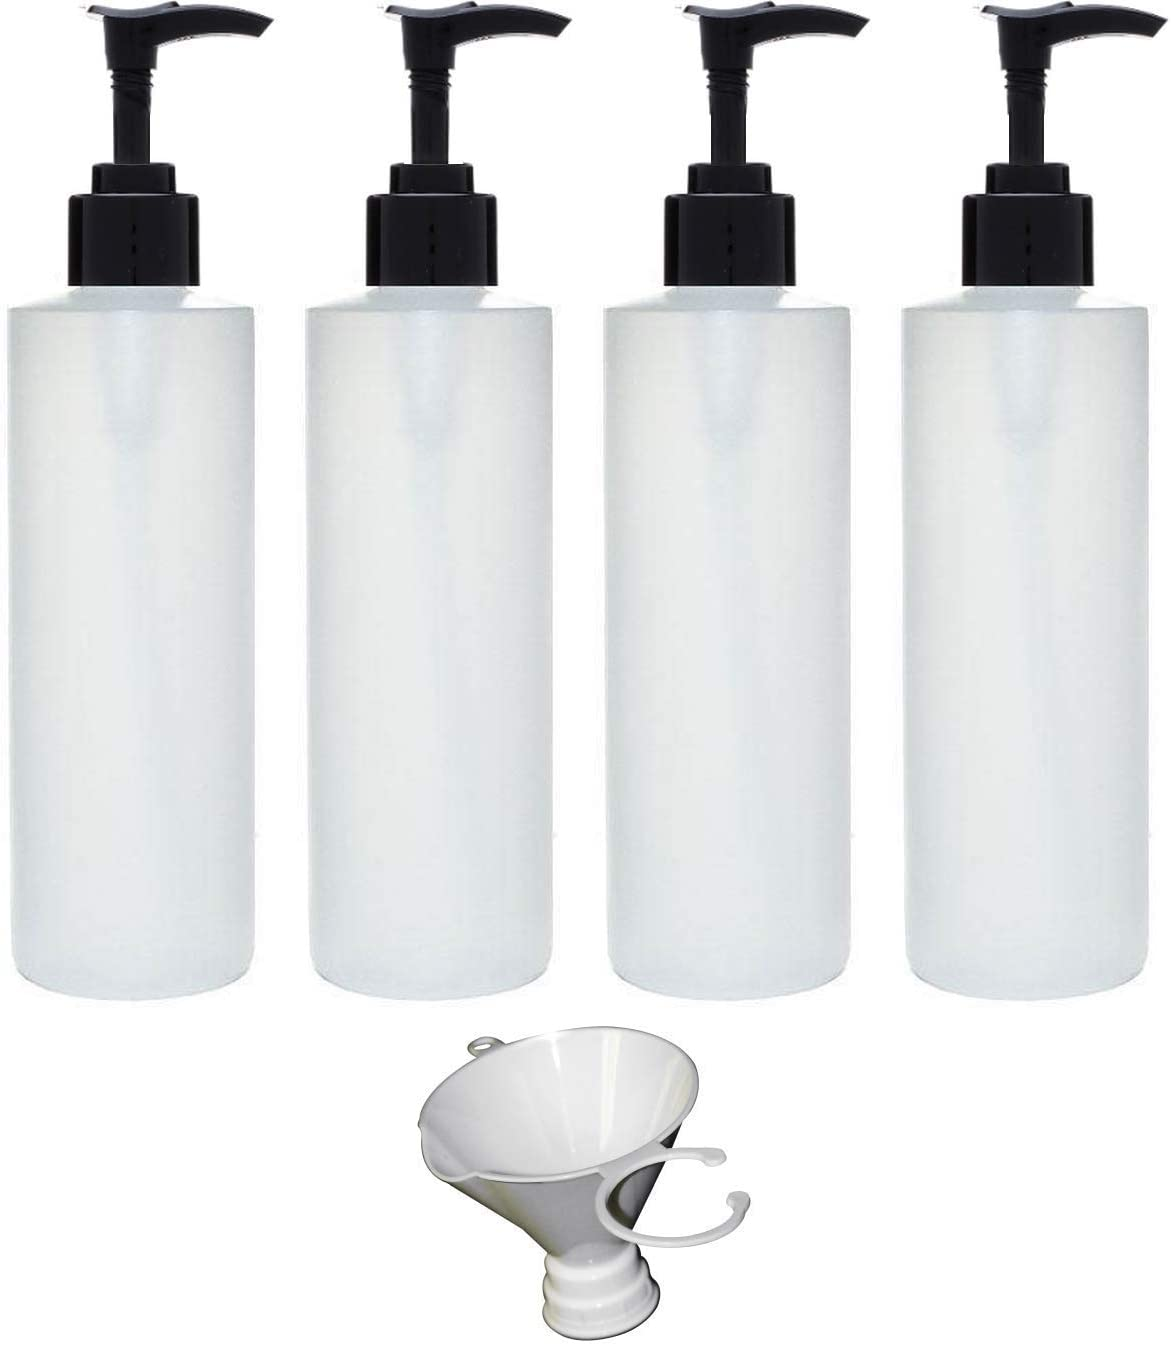 Earth s Essentials Four Pack of Refillable 8 Oz. HDPE Plastic Pump Bottles with Patented Screw On Funnel-Great for Dispensing Lotions, Shampoos and Massage Oils.